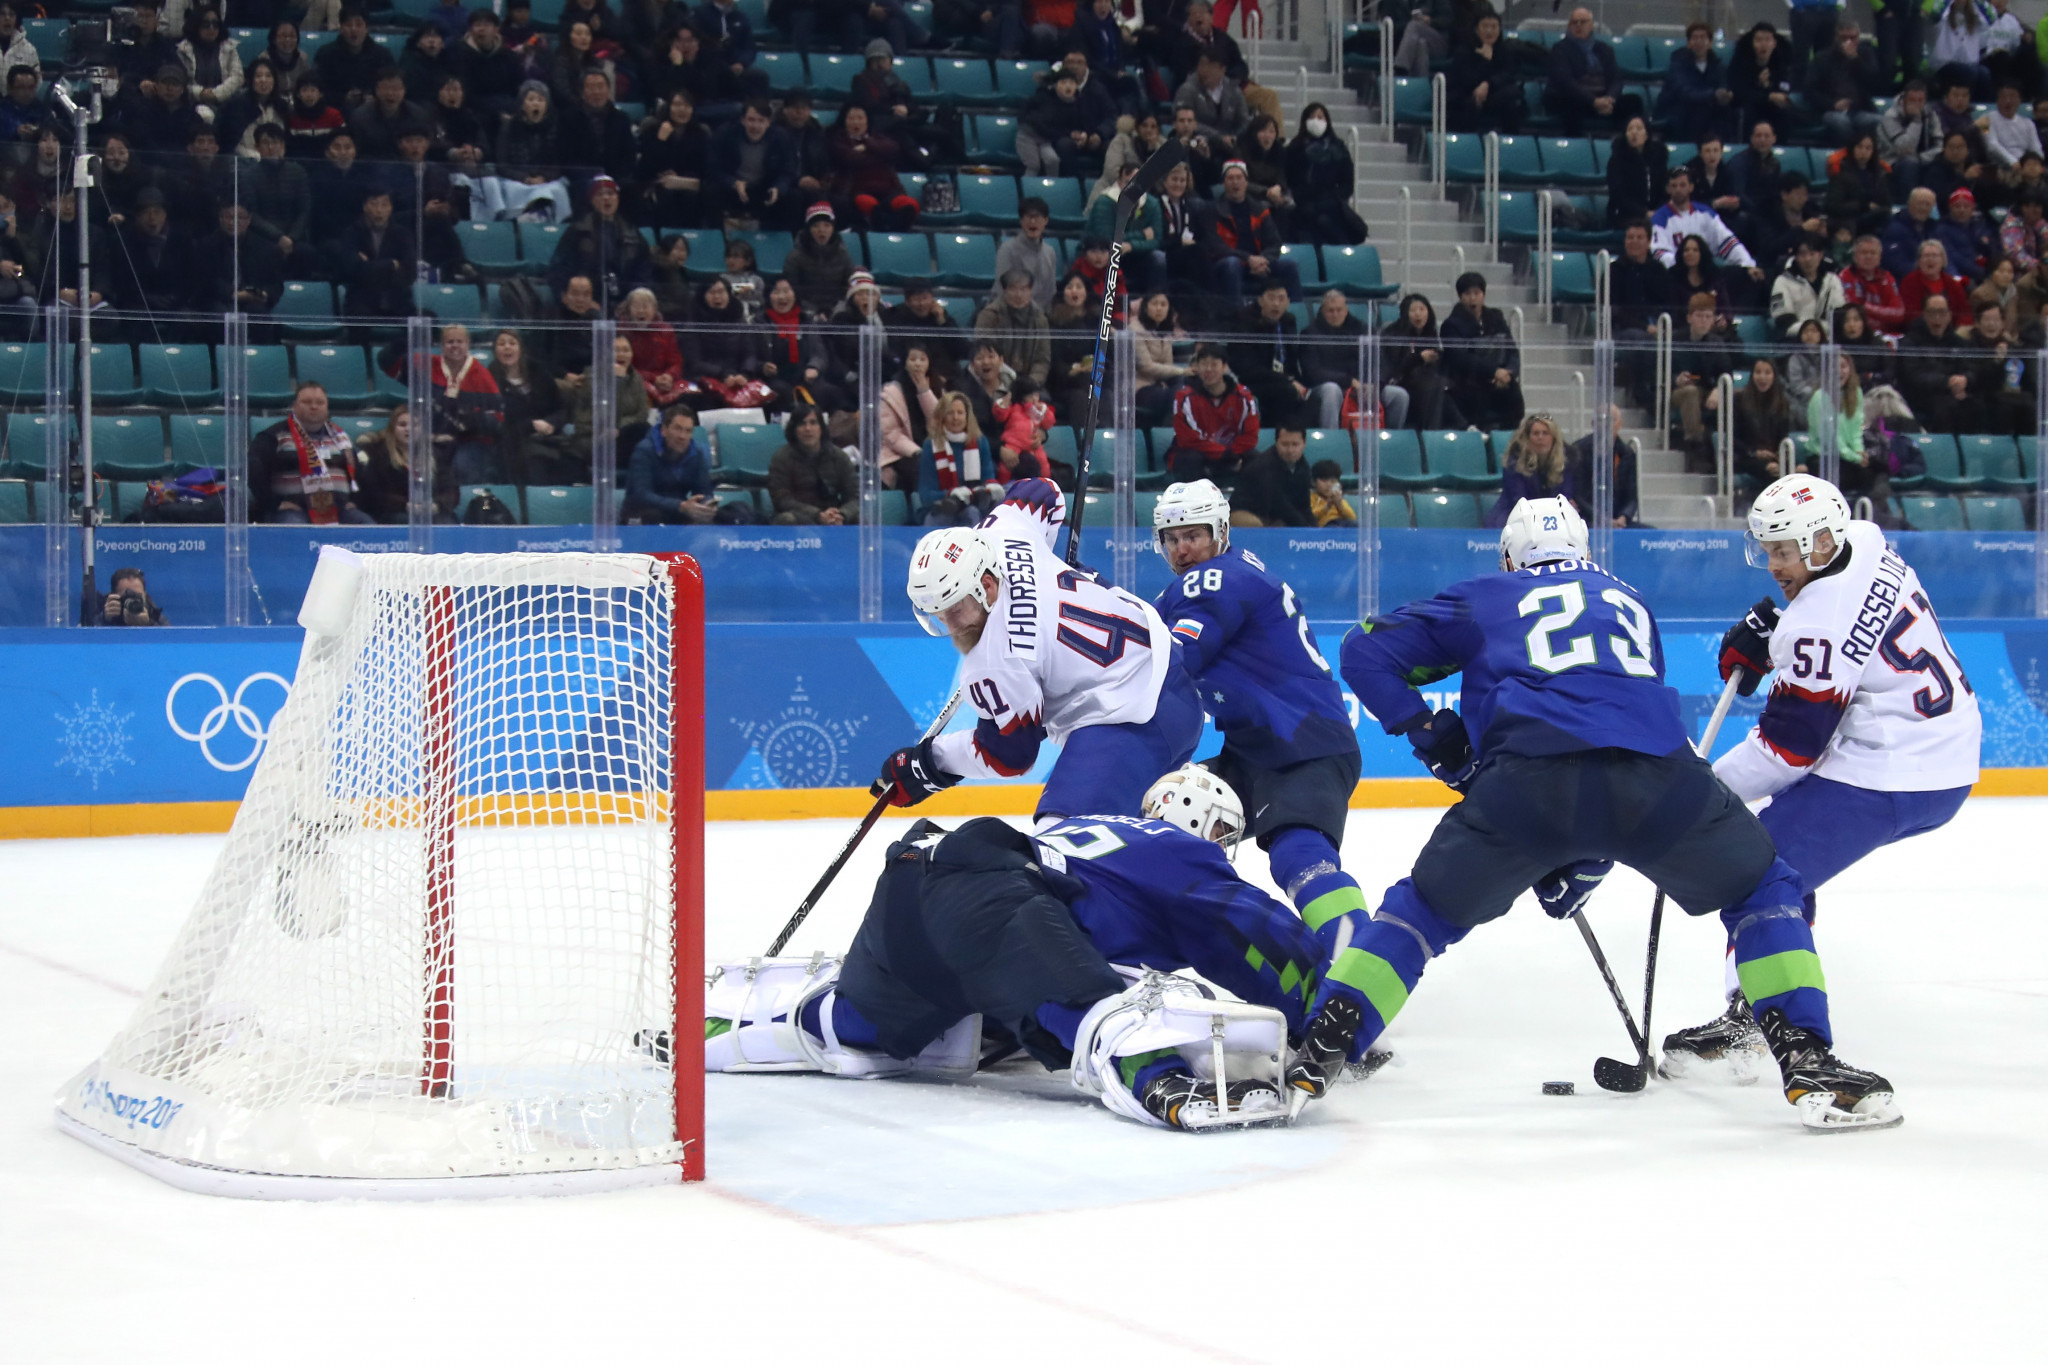 IIHF Olympic Pre-Qualification Round 3 starts in Nur-Sultan, Jesenice and Nottingham